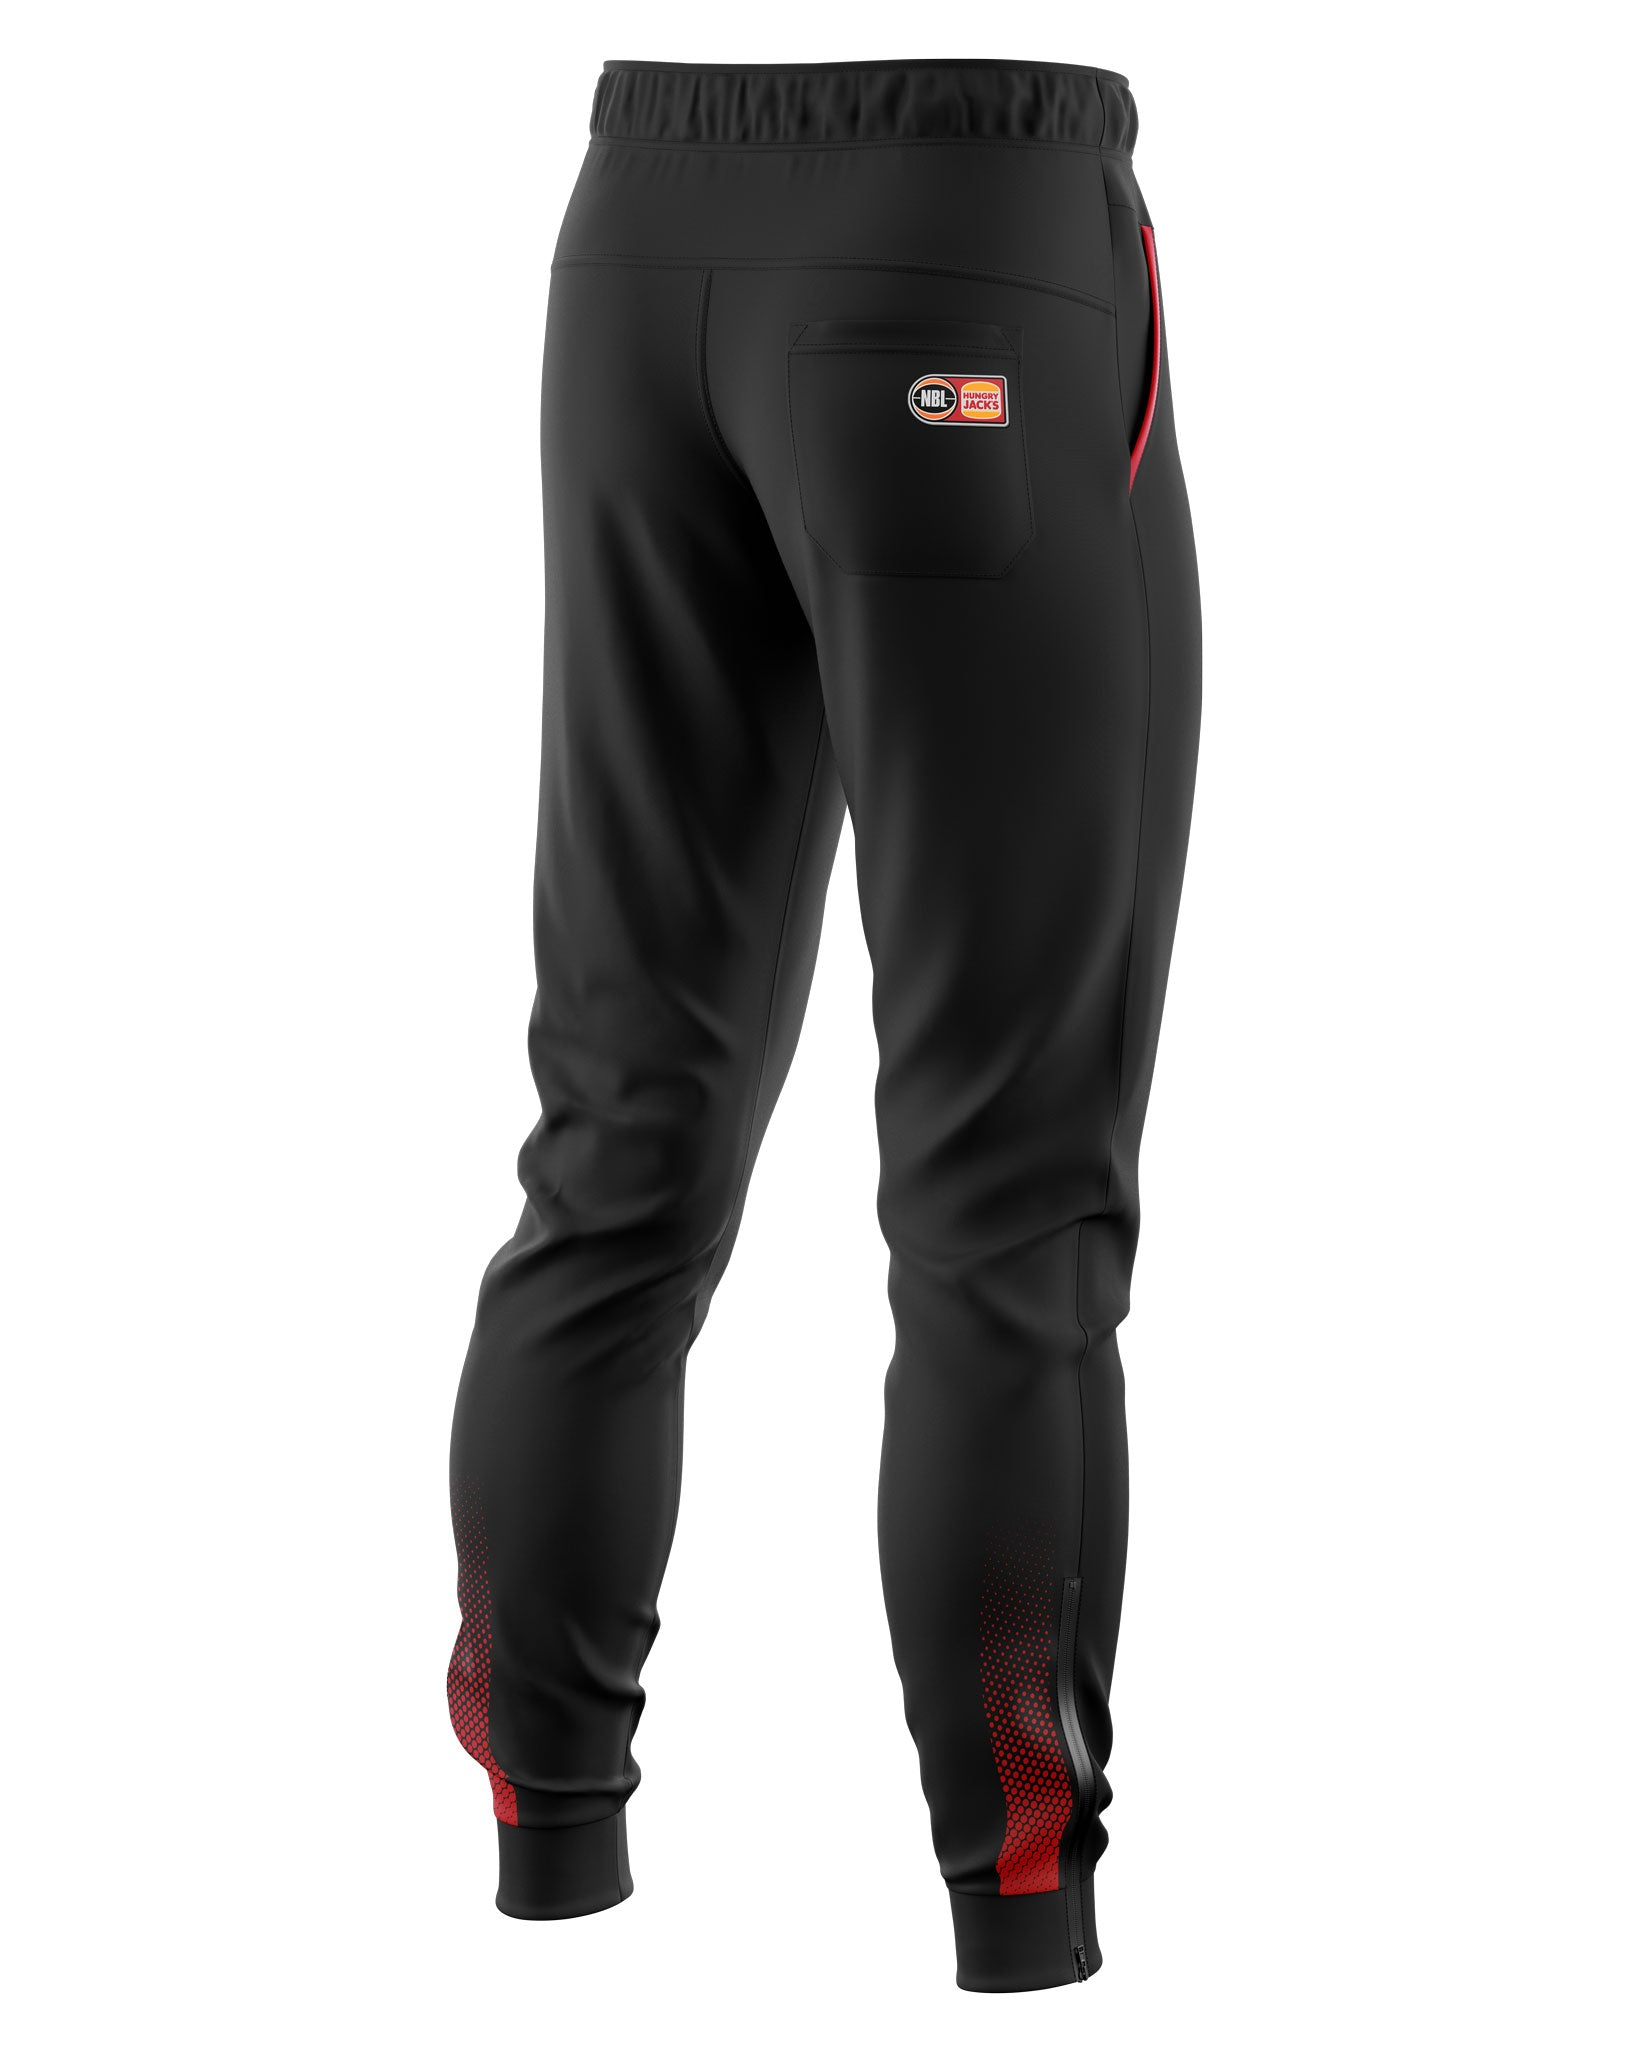 Hawks 20/21 Performance Trackpants